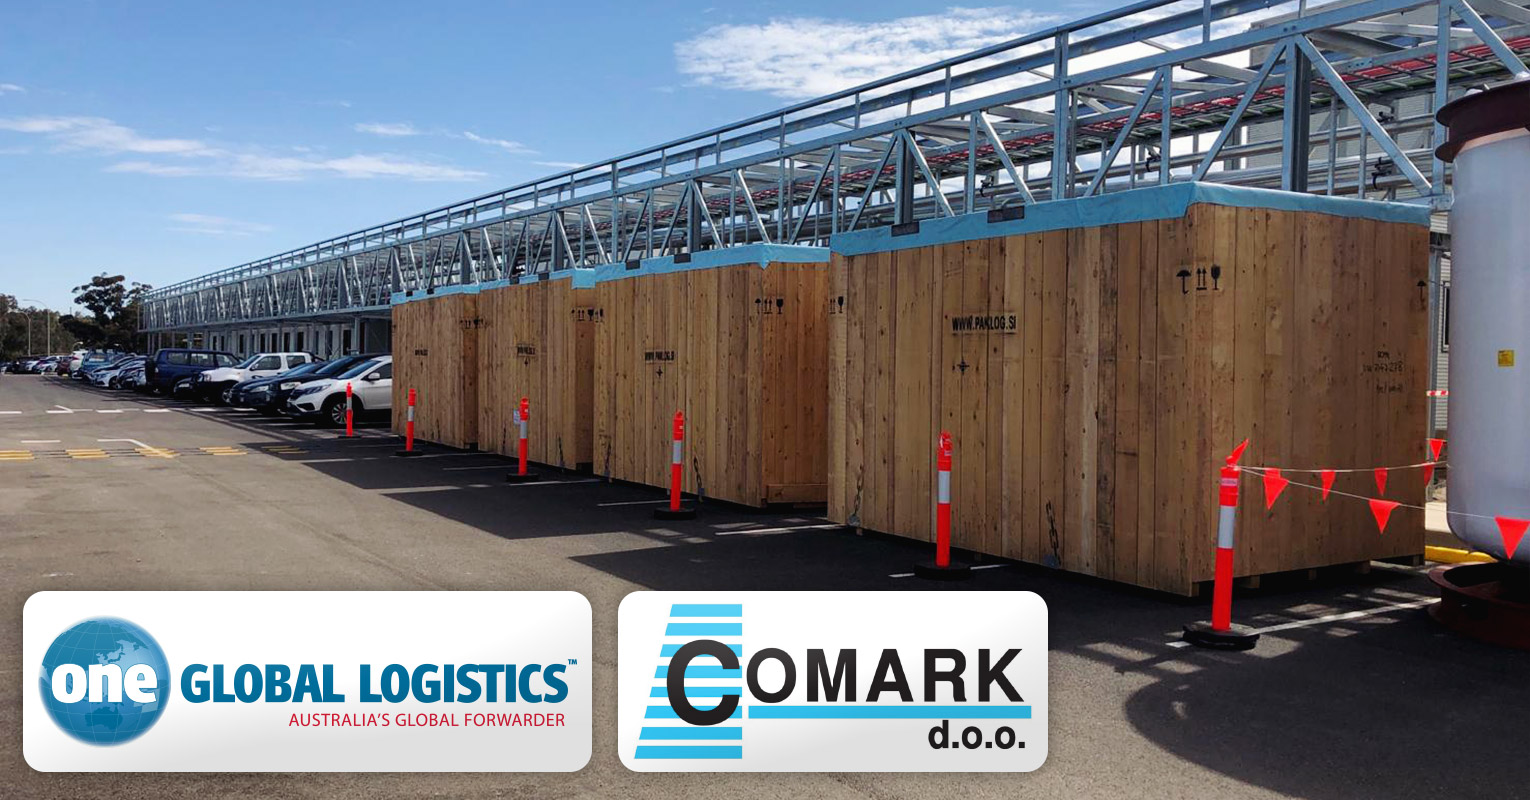 One Global Logistics Successfully Handled an Import Project Delivery for CSL Behring in Melbourne Appointed by Comark Slovenia